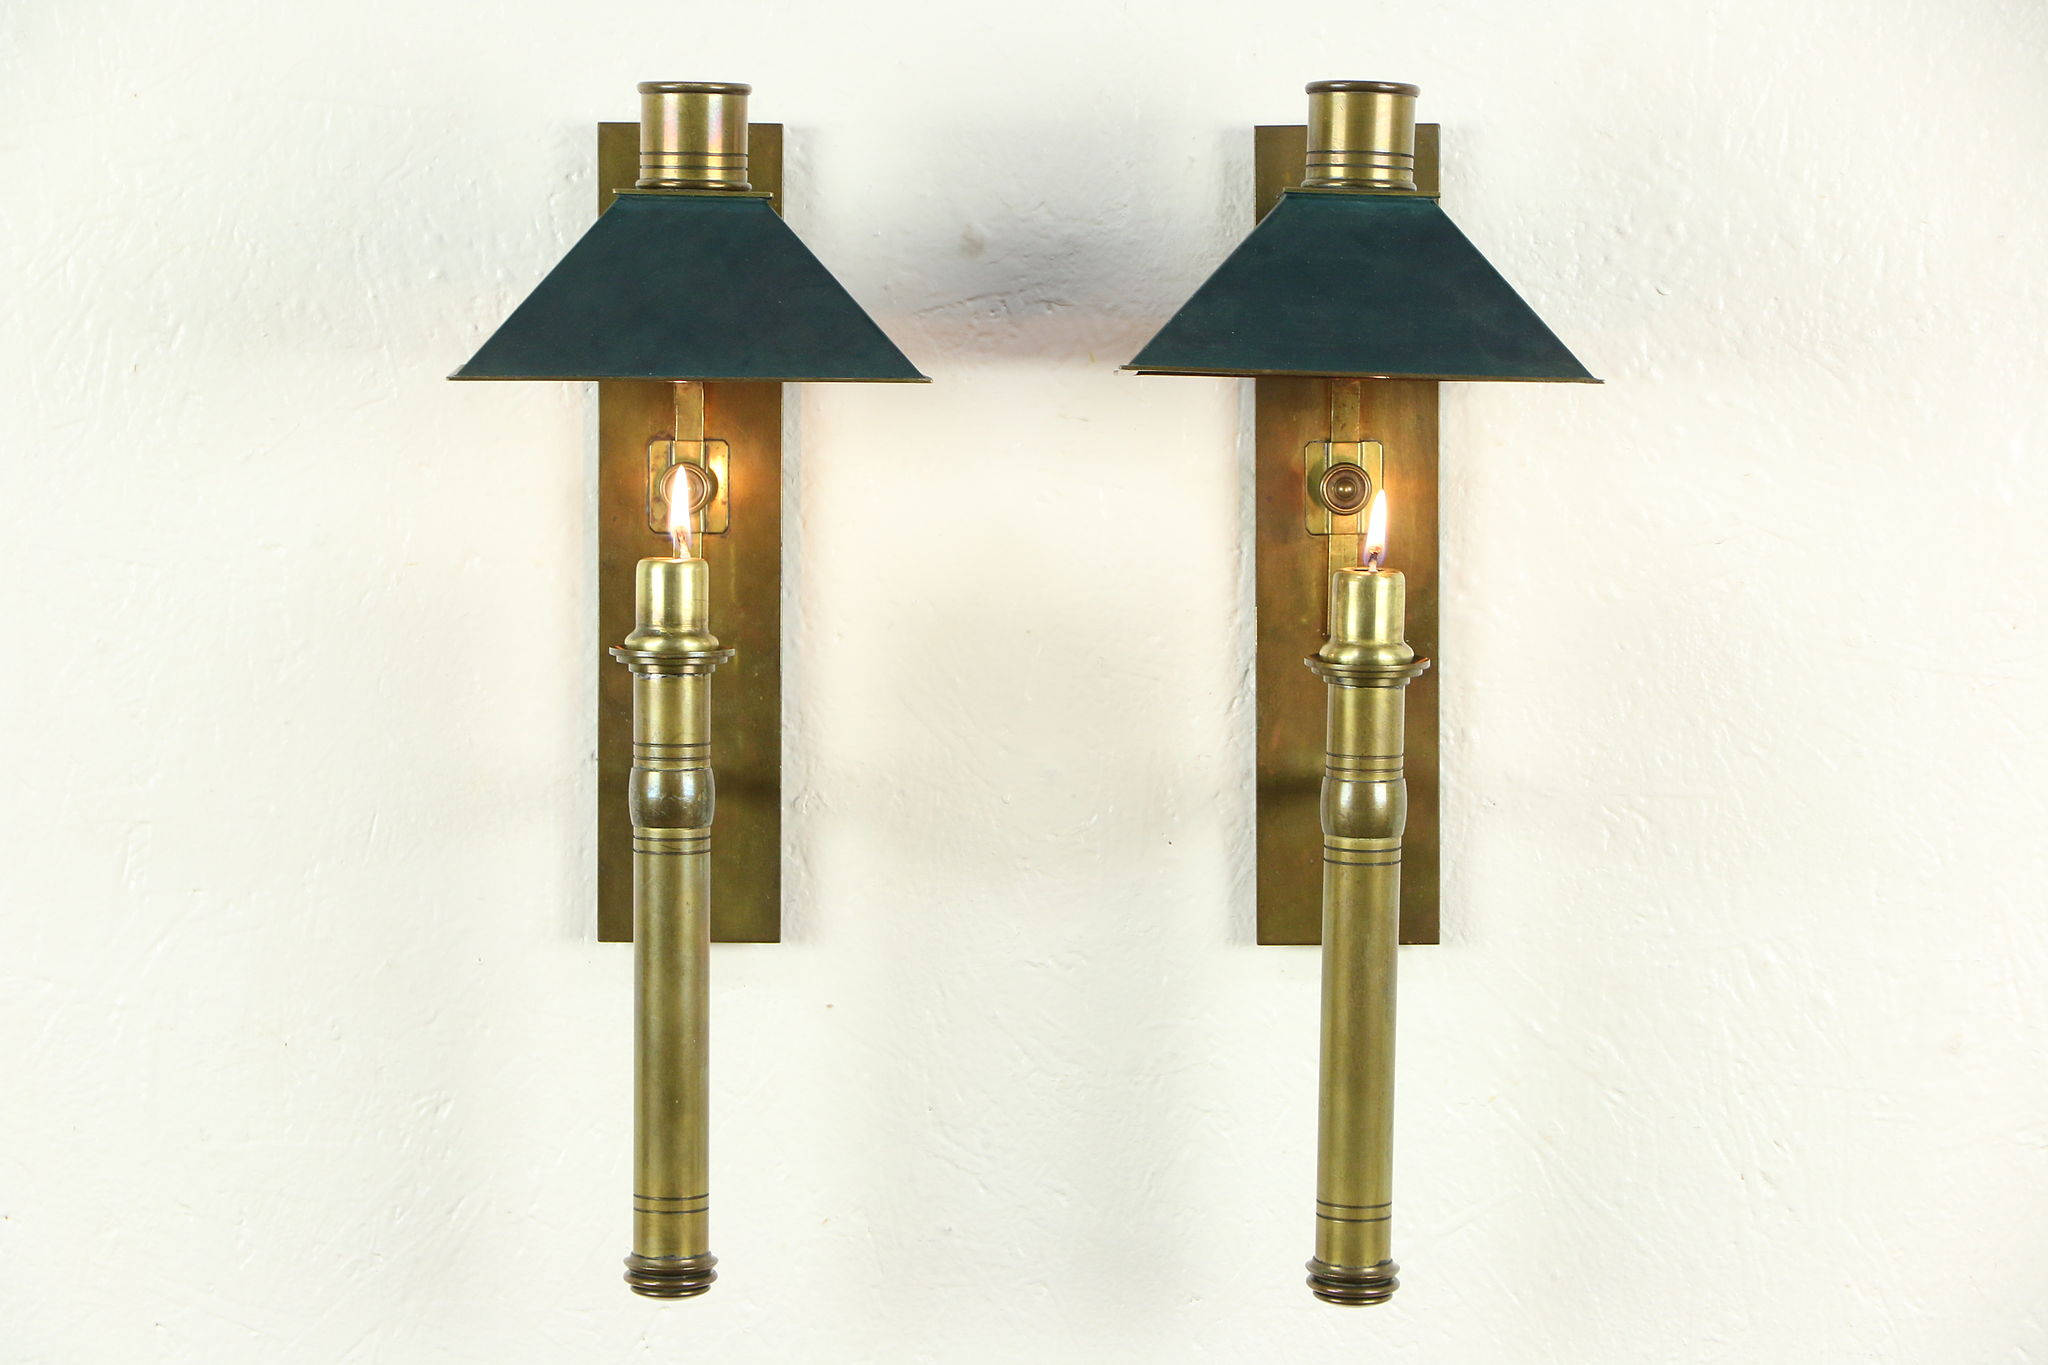 Sold pair of brass arts crafts antique 1900 wall candle pair of brass arts crafts antique 1900 wall candle sconces amipublicfo Image collections